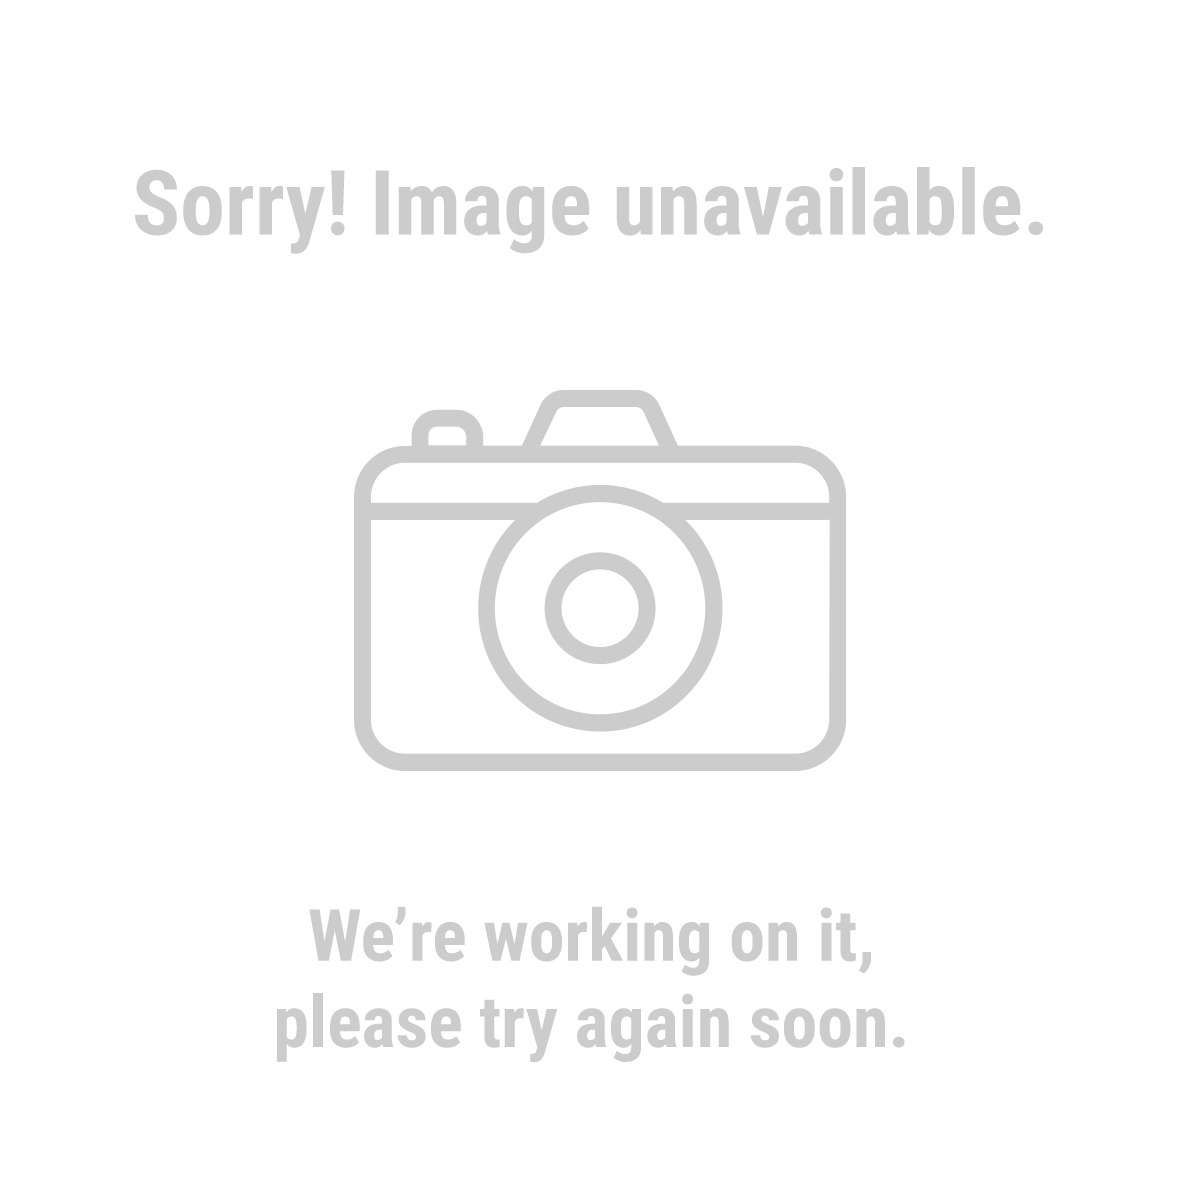 Western Safety 66626 Goatskin Driving Gloves, Grey